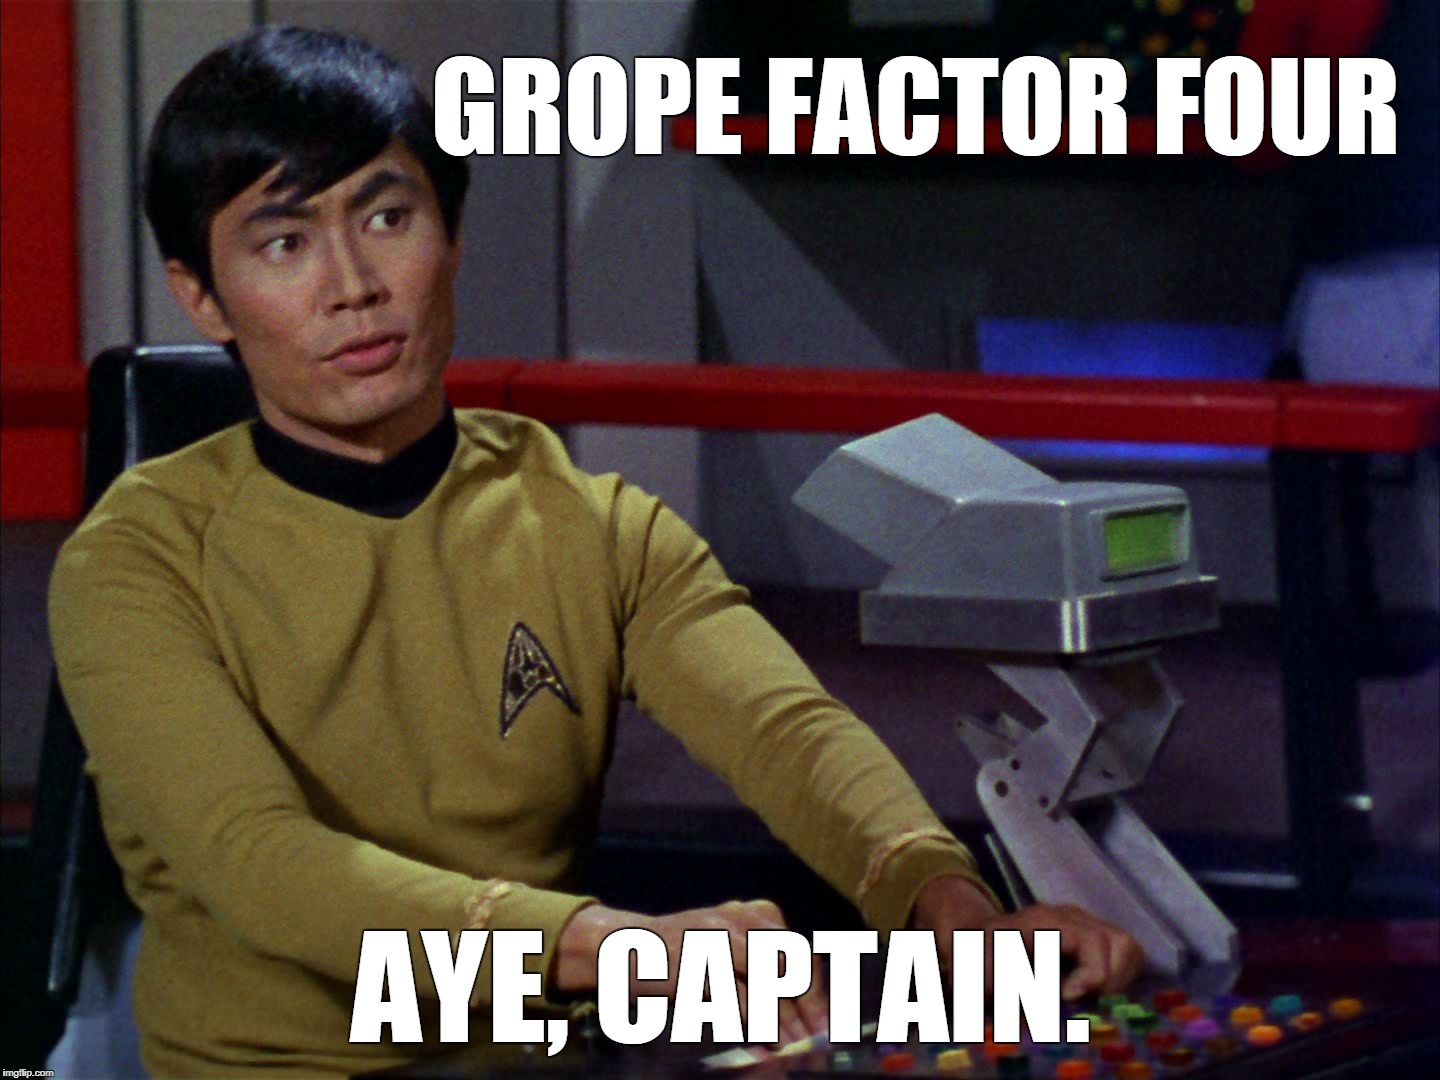 Grope Factor Four, Sulu | GROPE FACTOR FOUR AYE, CAPTAIN. | image tagged in sulu,star trek,george takaei | made w/ Imgflip meme maker